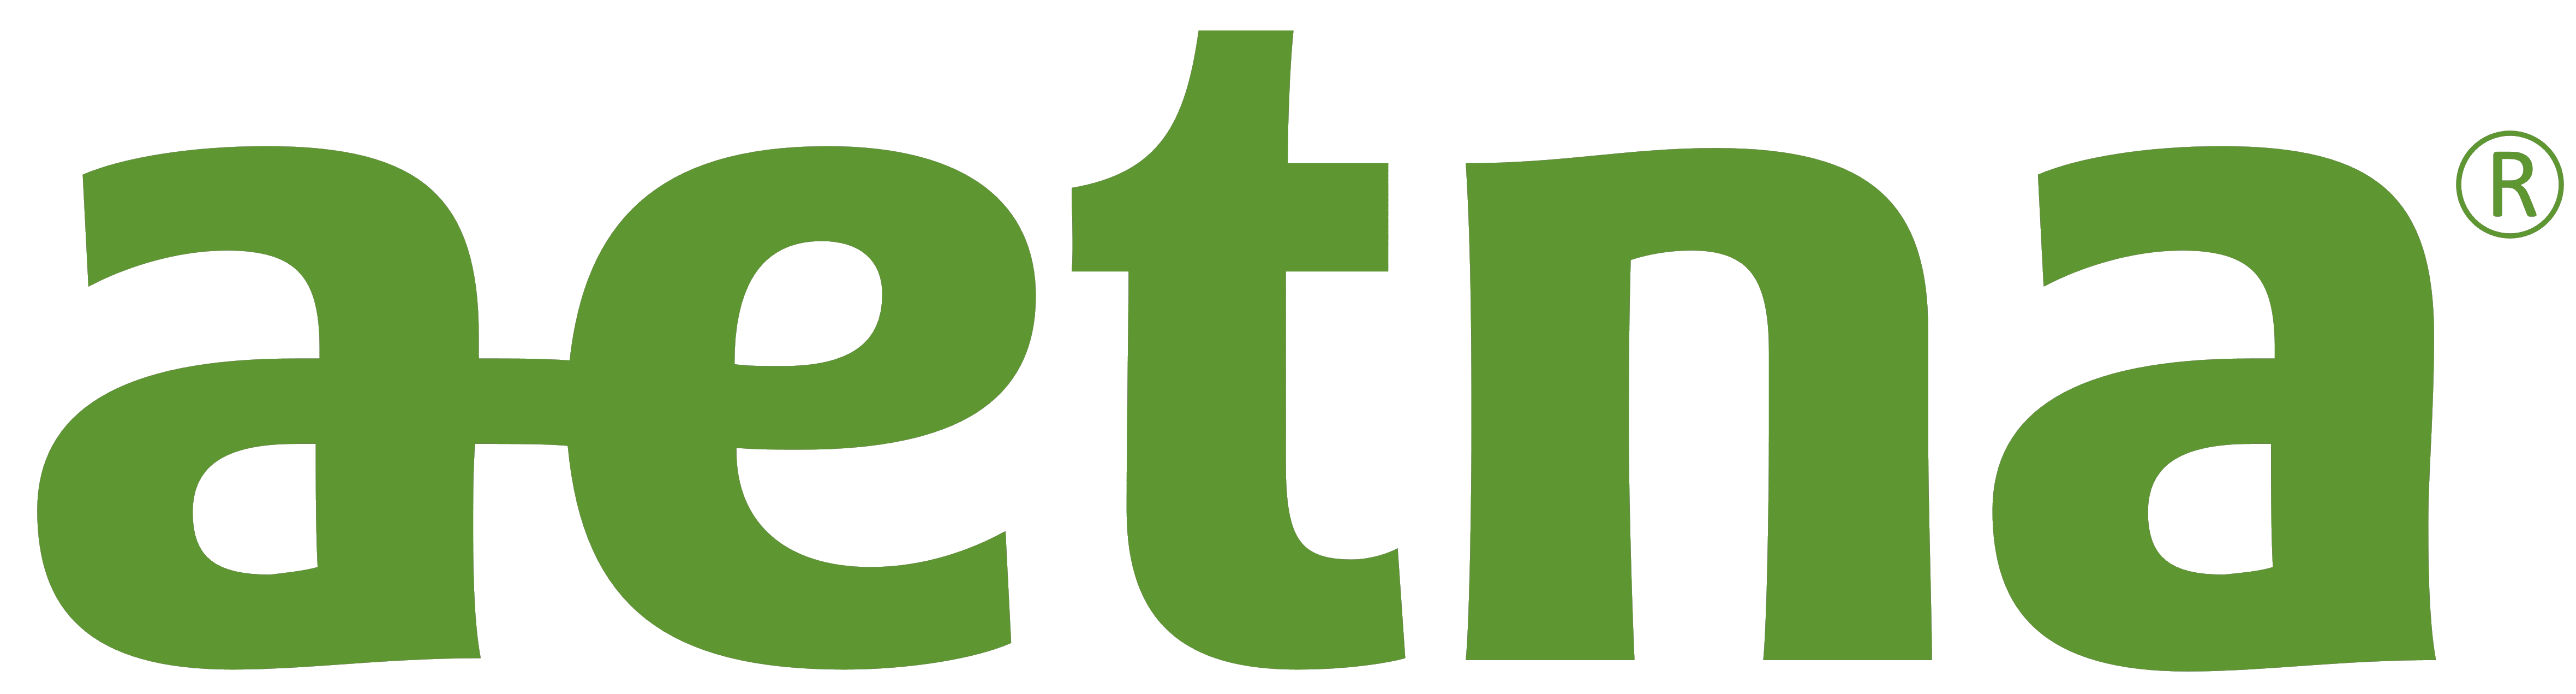 Image result for aetna logo